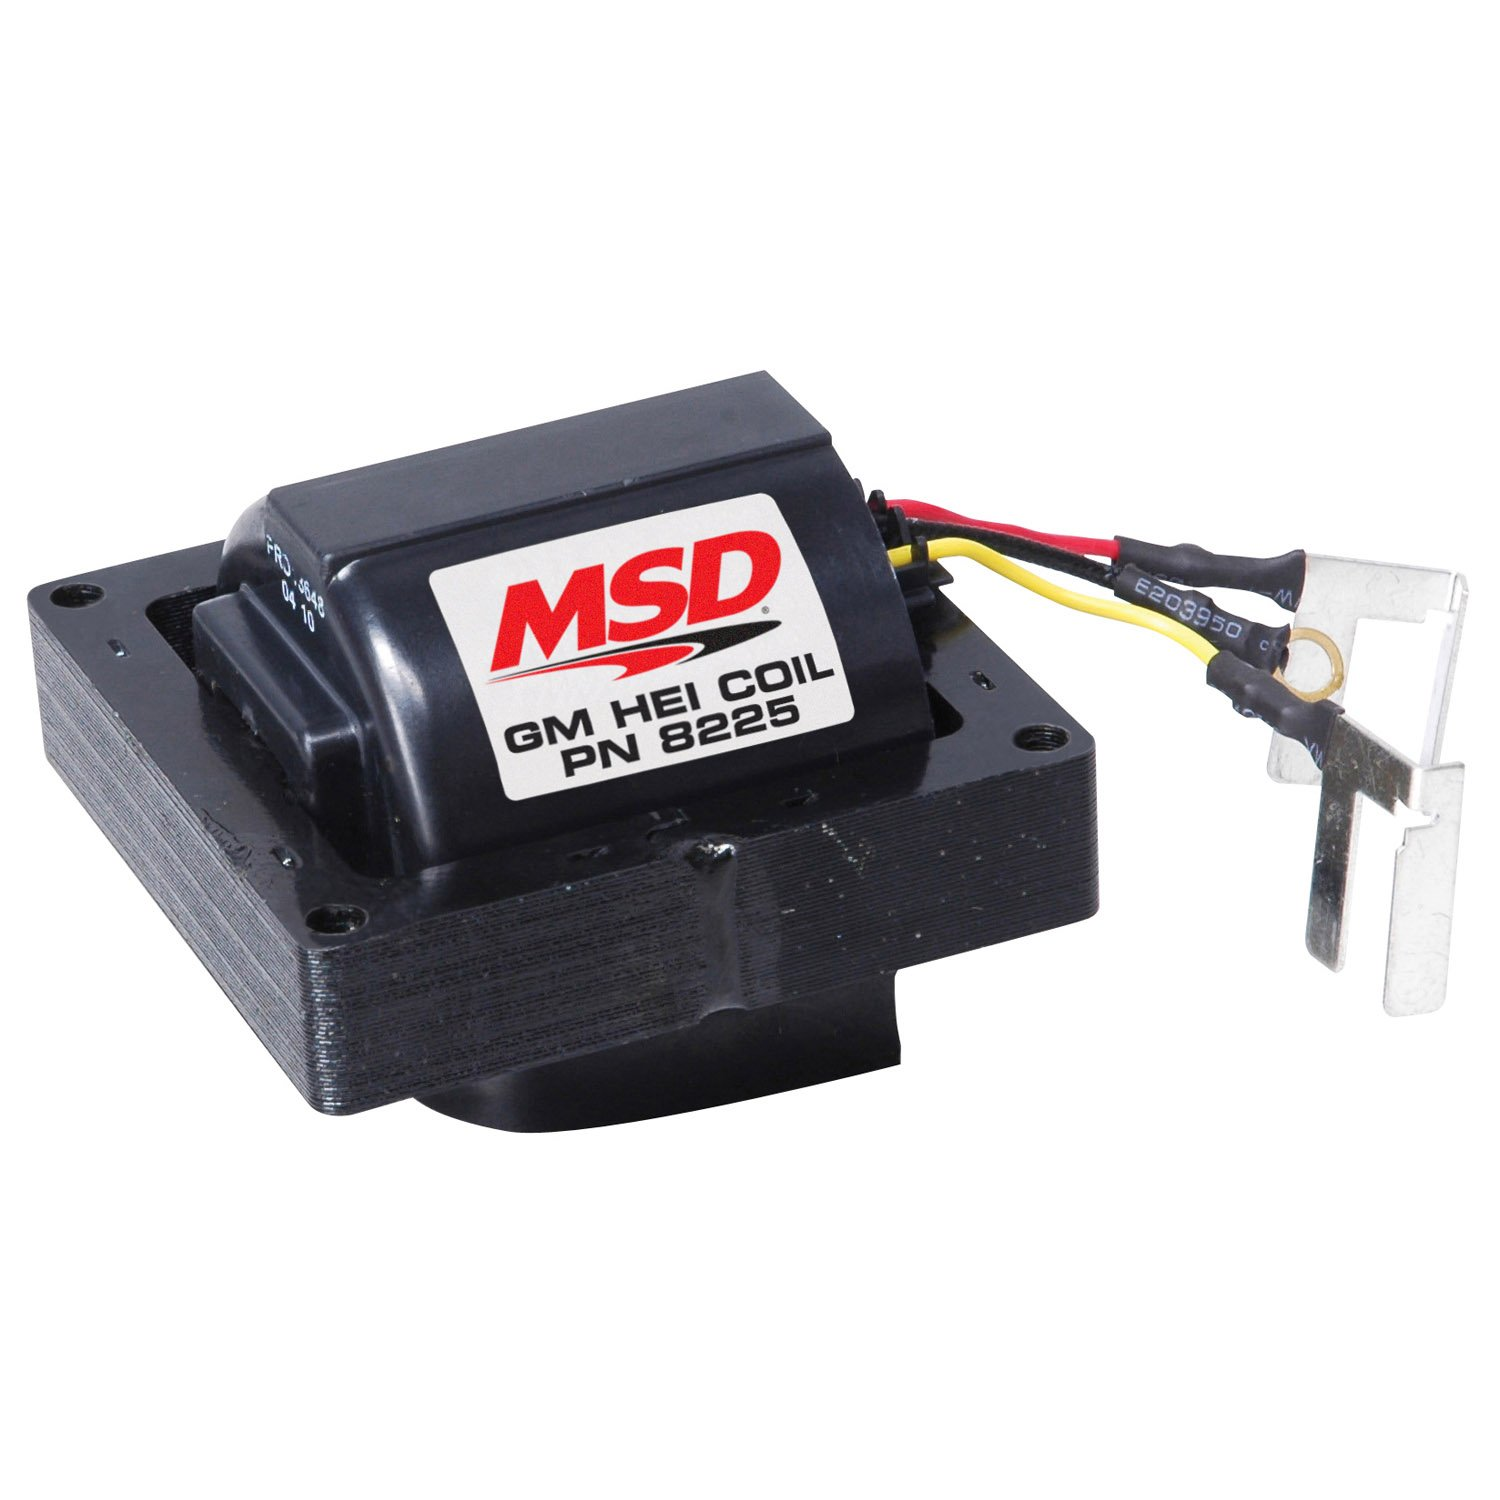 msd 8365 gm hei billet distributor msd performance products gm hei distributor coil